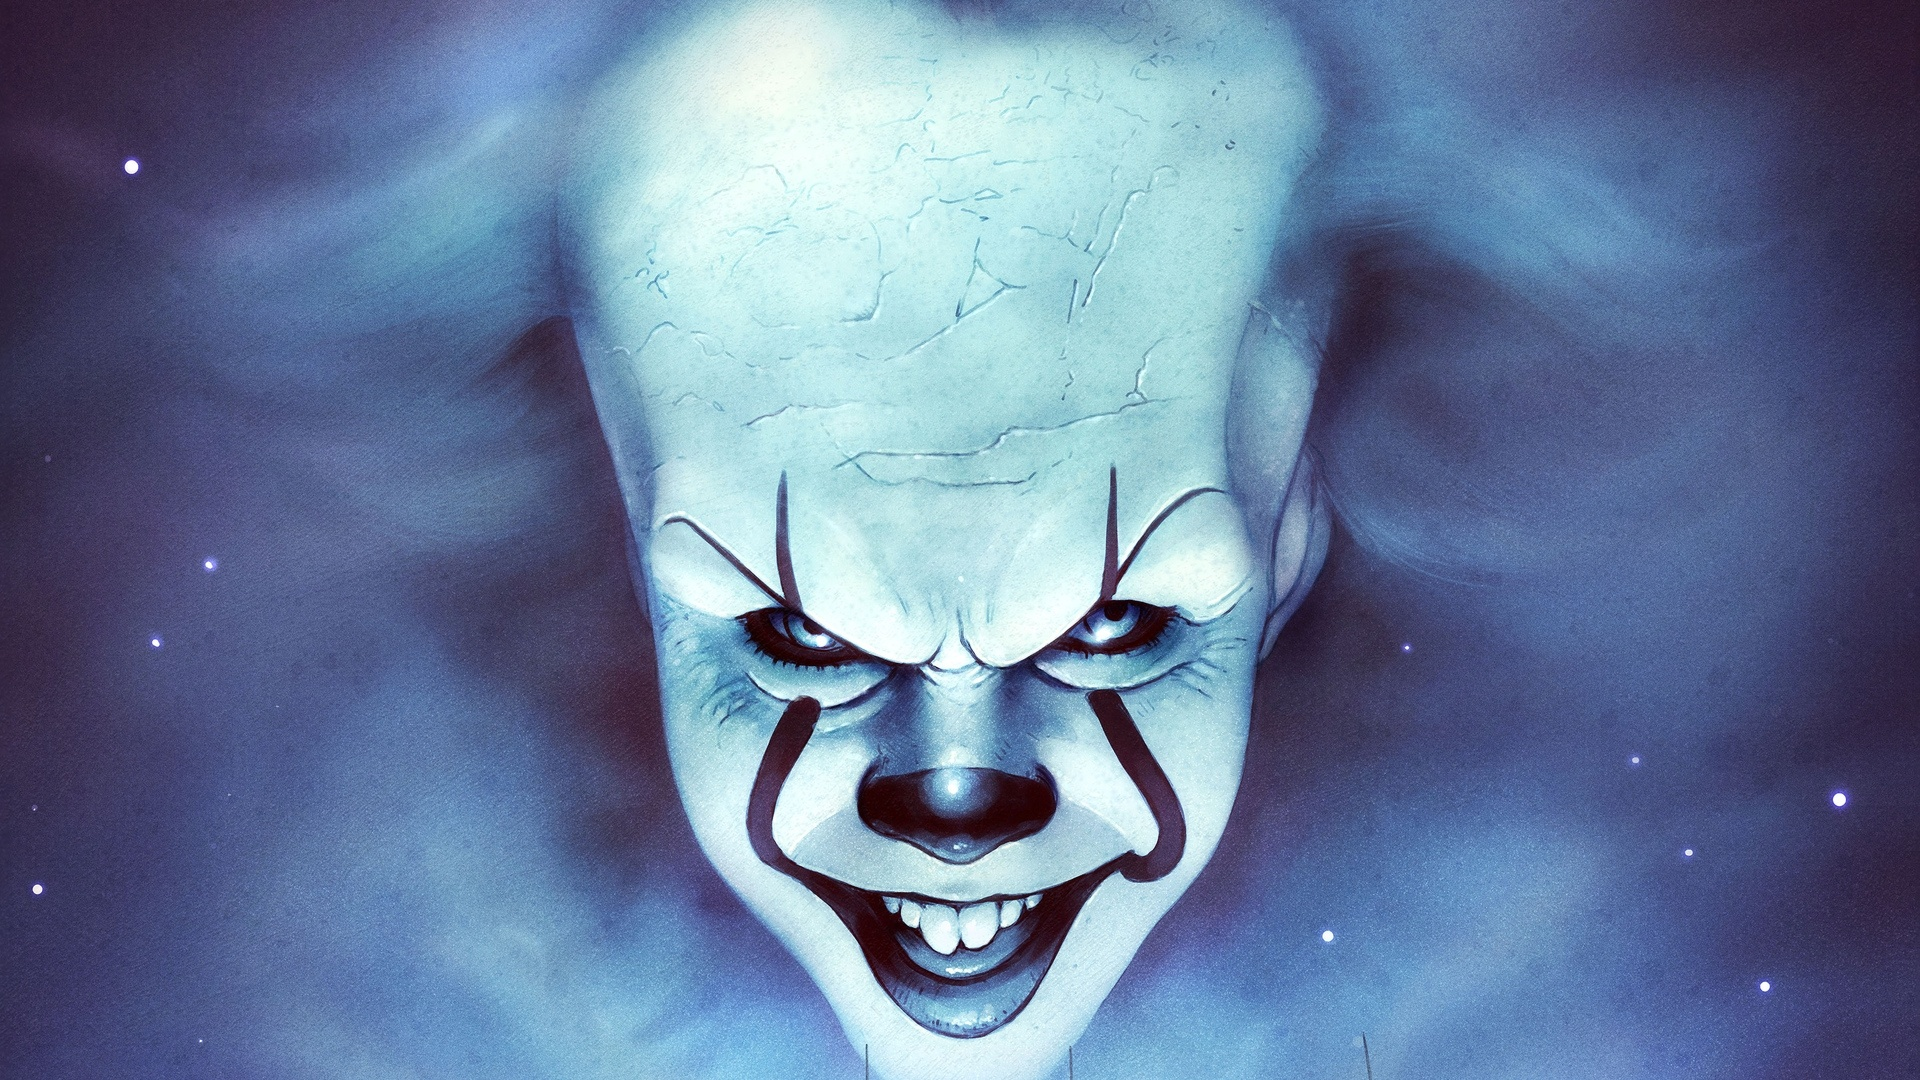 Pennywise hd background